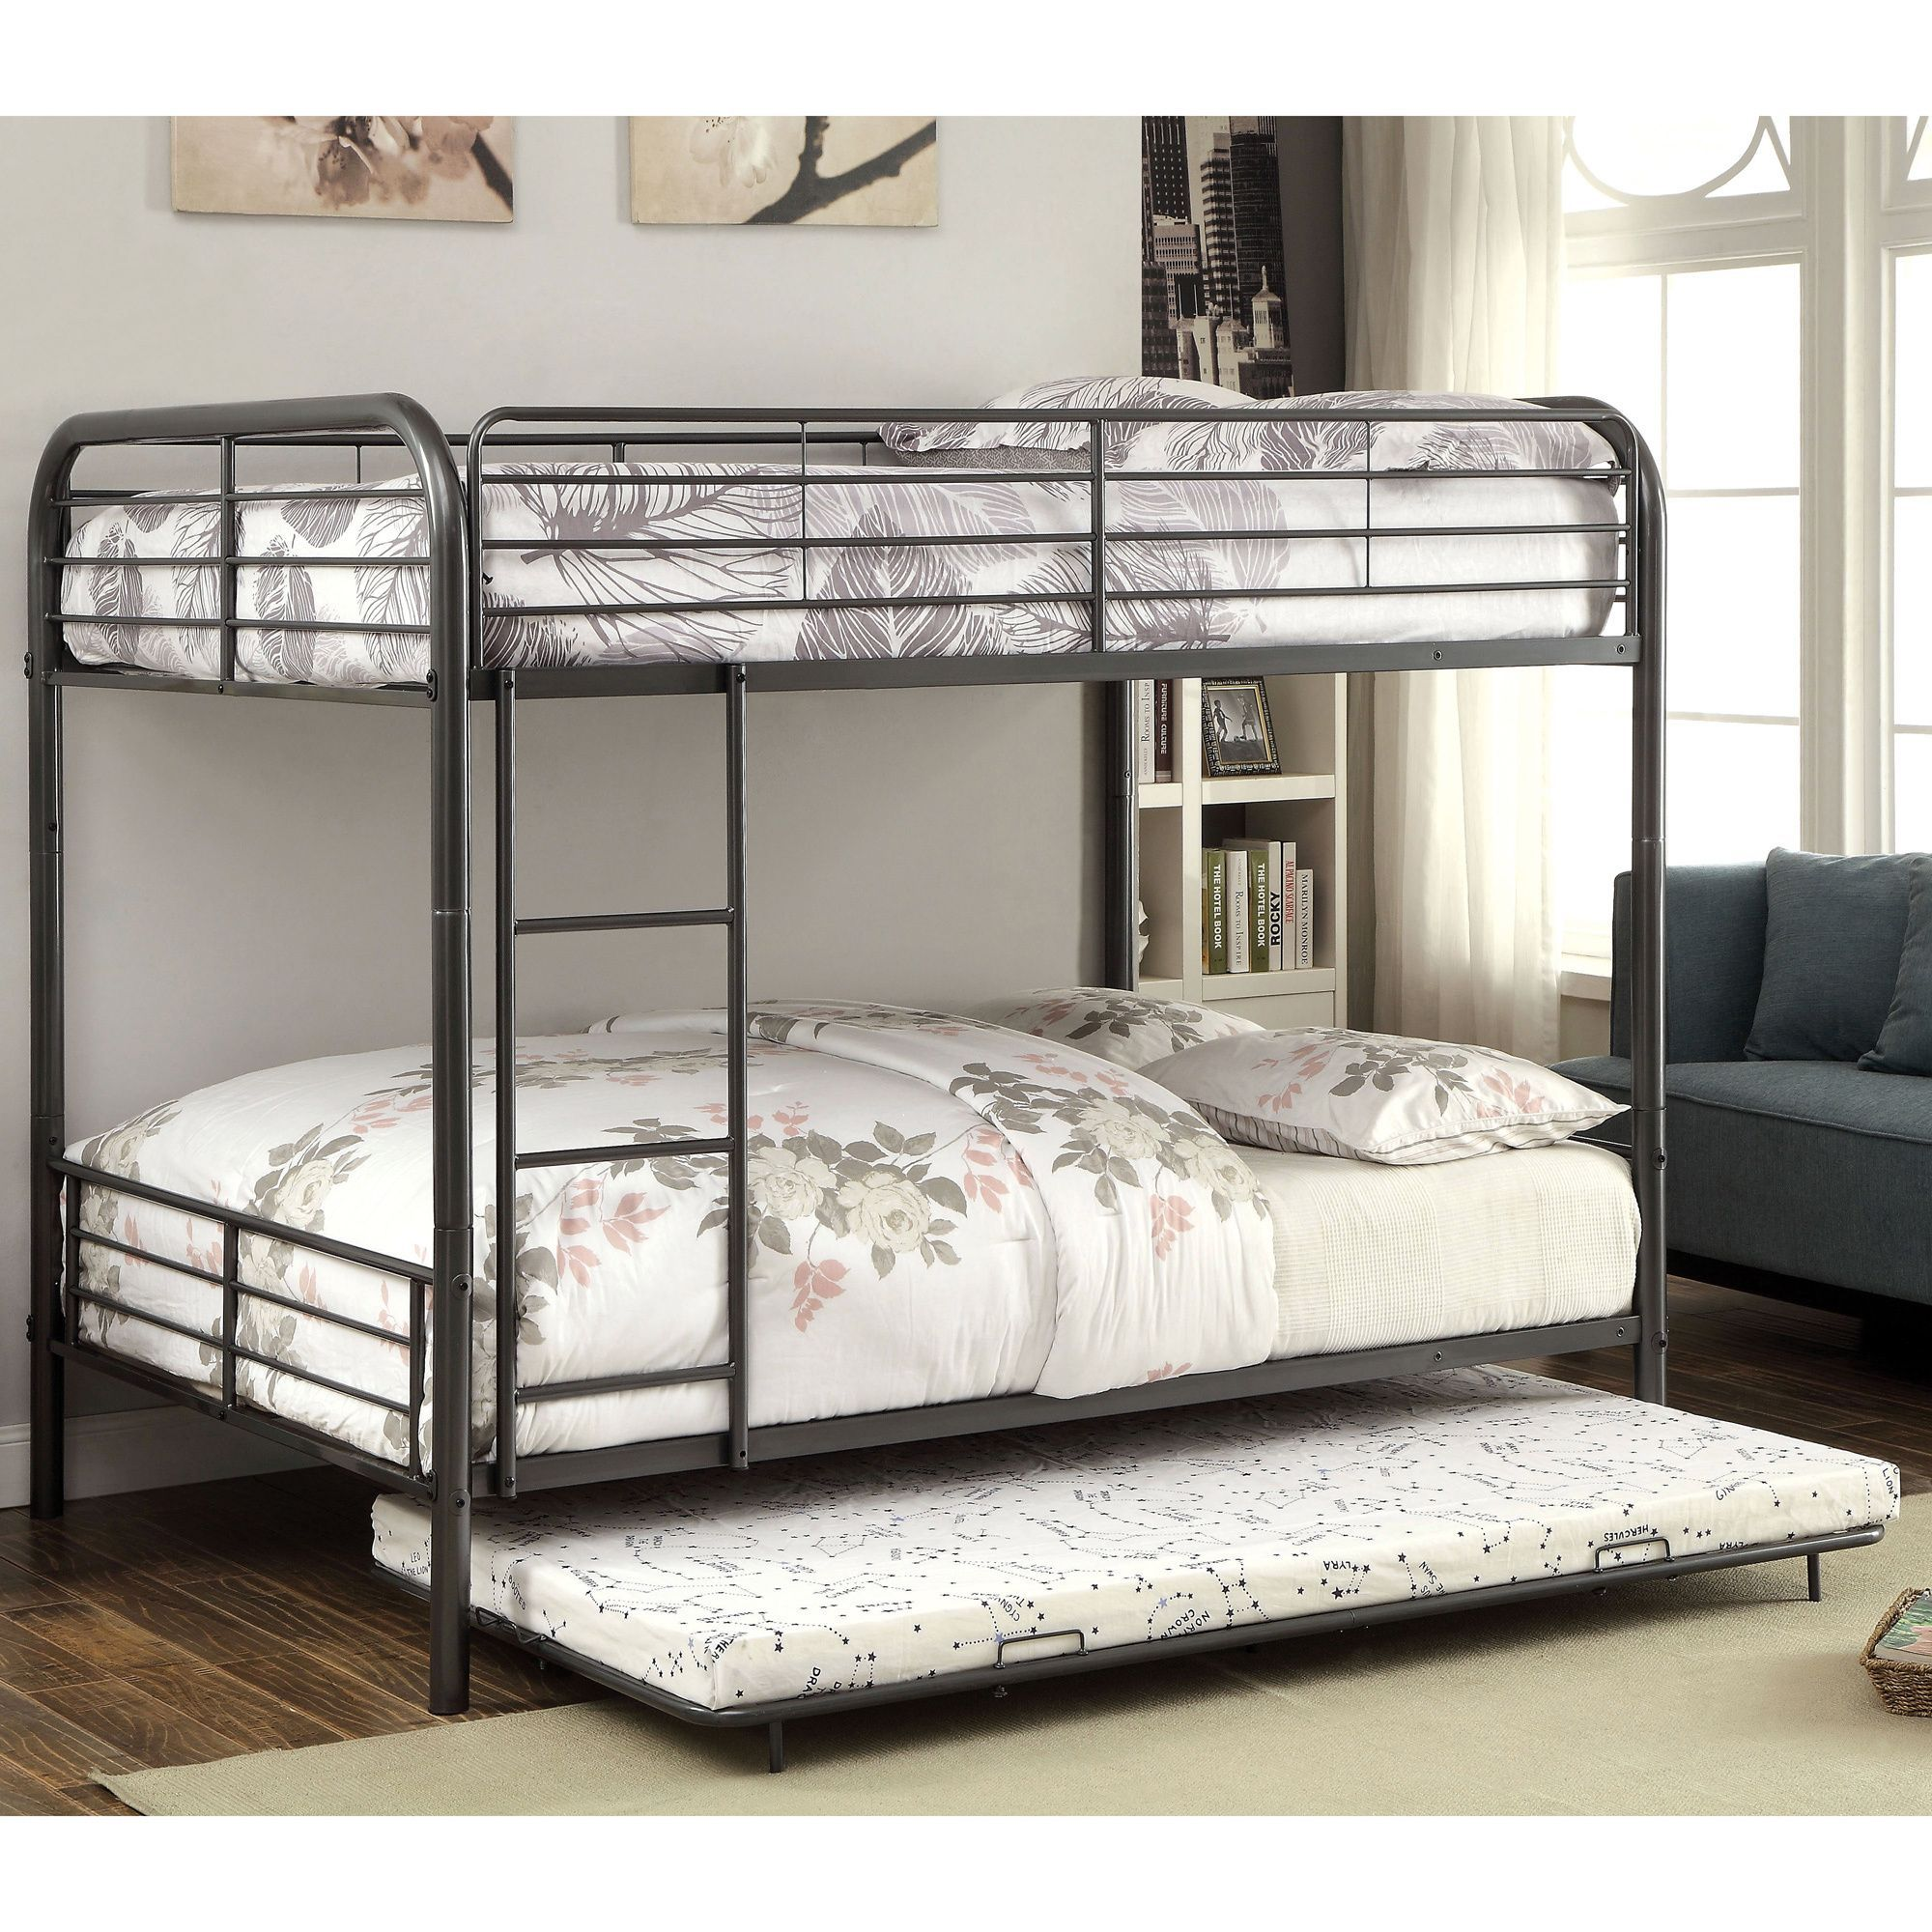 Furniture Of America Linden Ii 2 Piece Over Bunk Bed With Trundle